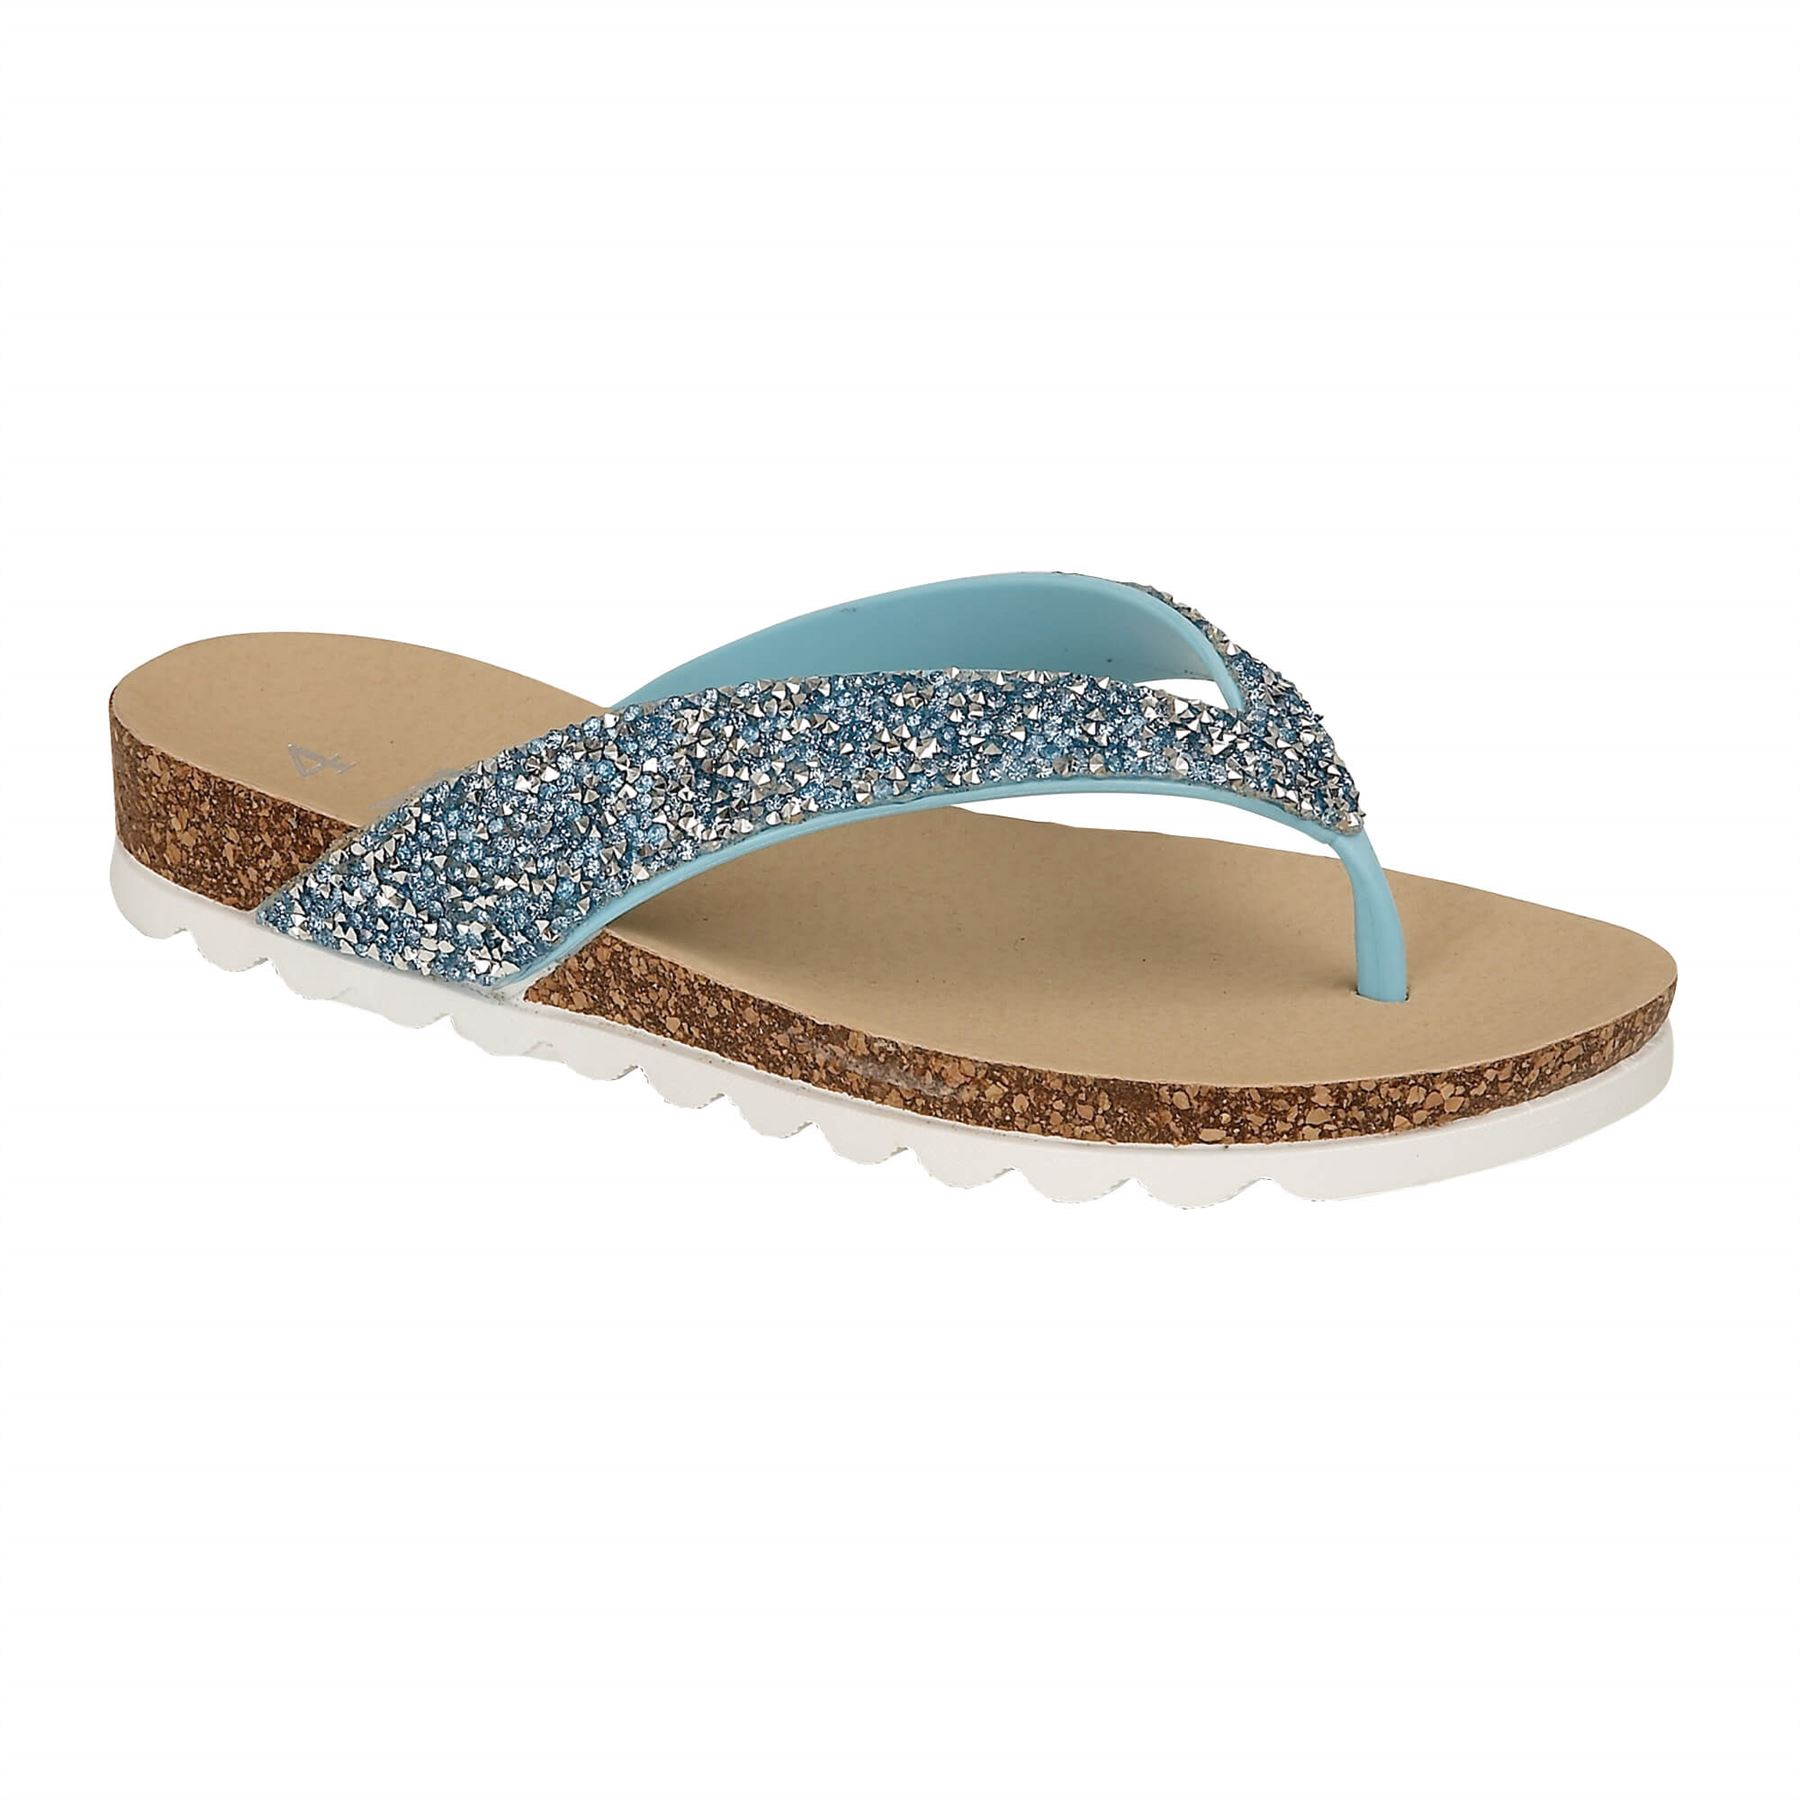 Womens-Casual-Toe-Post-Sparkly-Sandals-Ladies-Summer-Flip-Flops-Sliders-Mules thumbnail 2